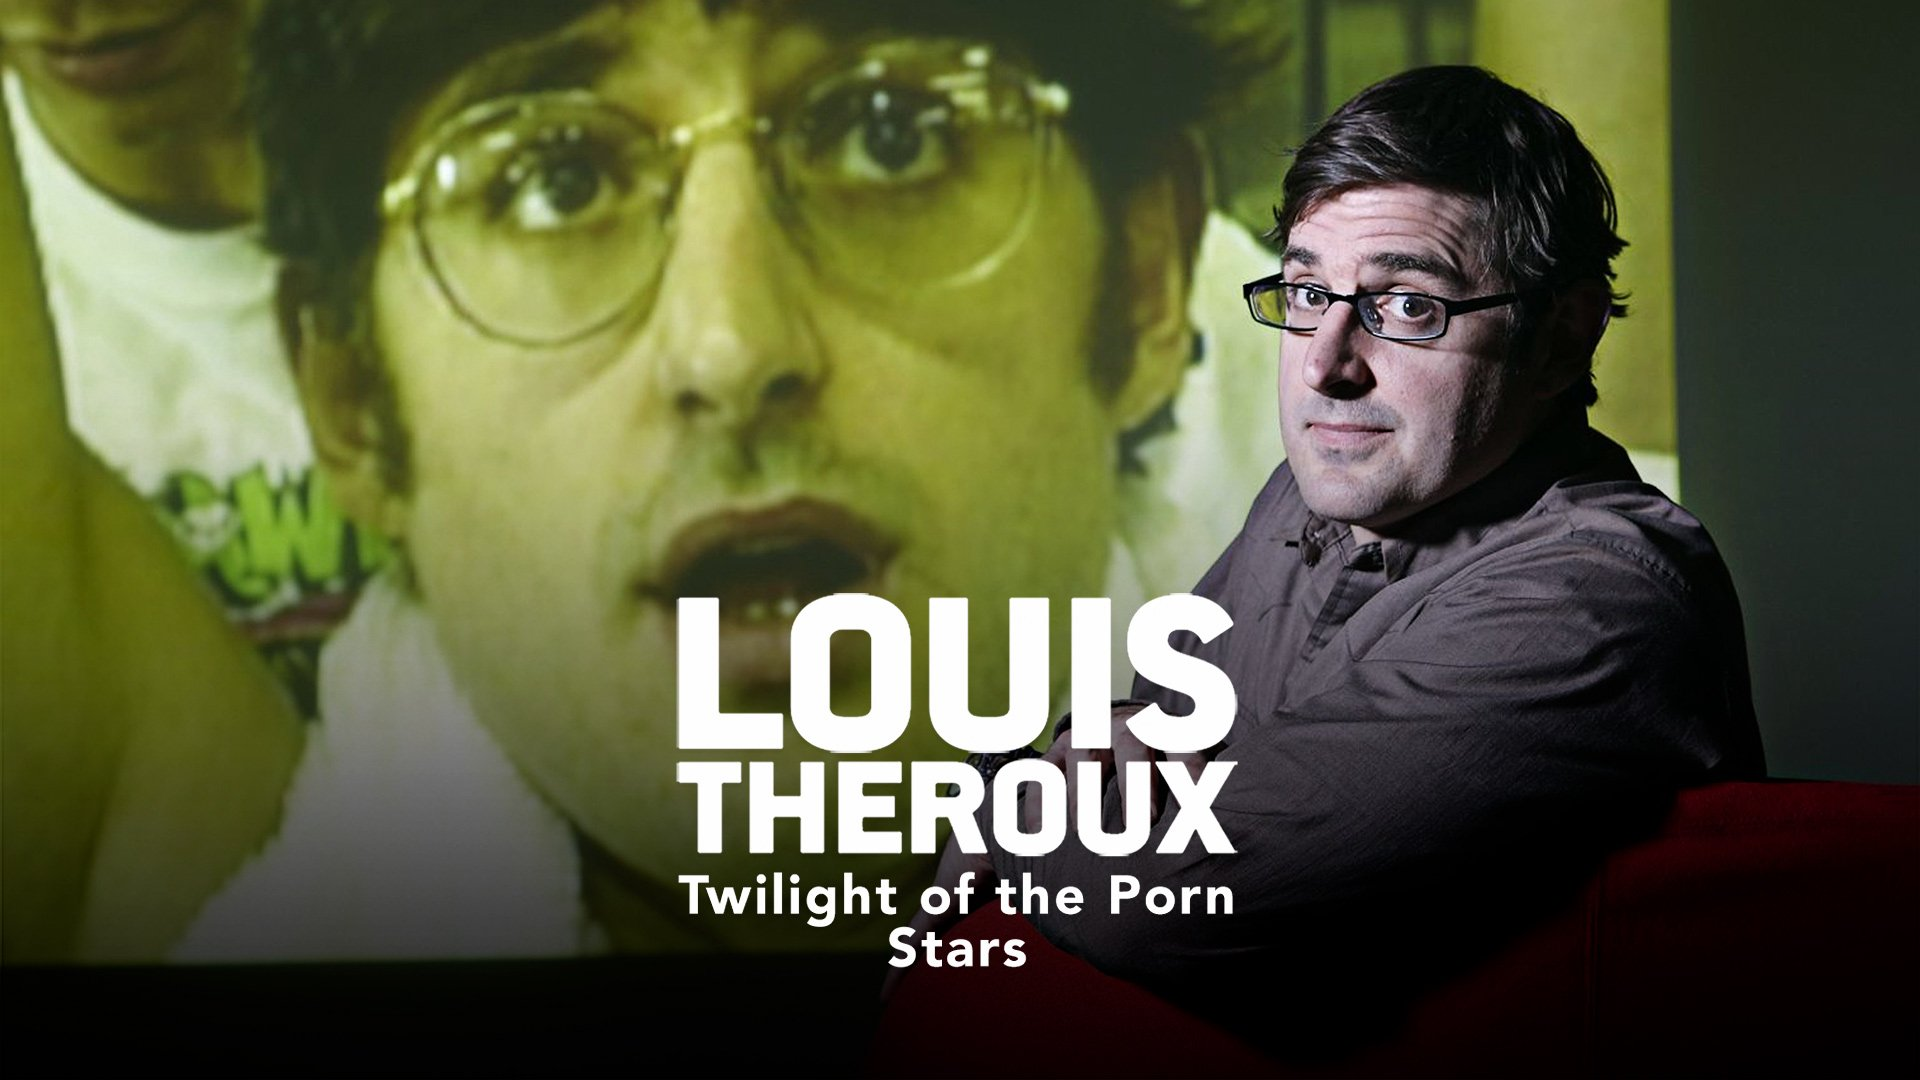 Louis Theroux: Twilight of the Porn Stars on BritBox UK